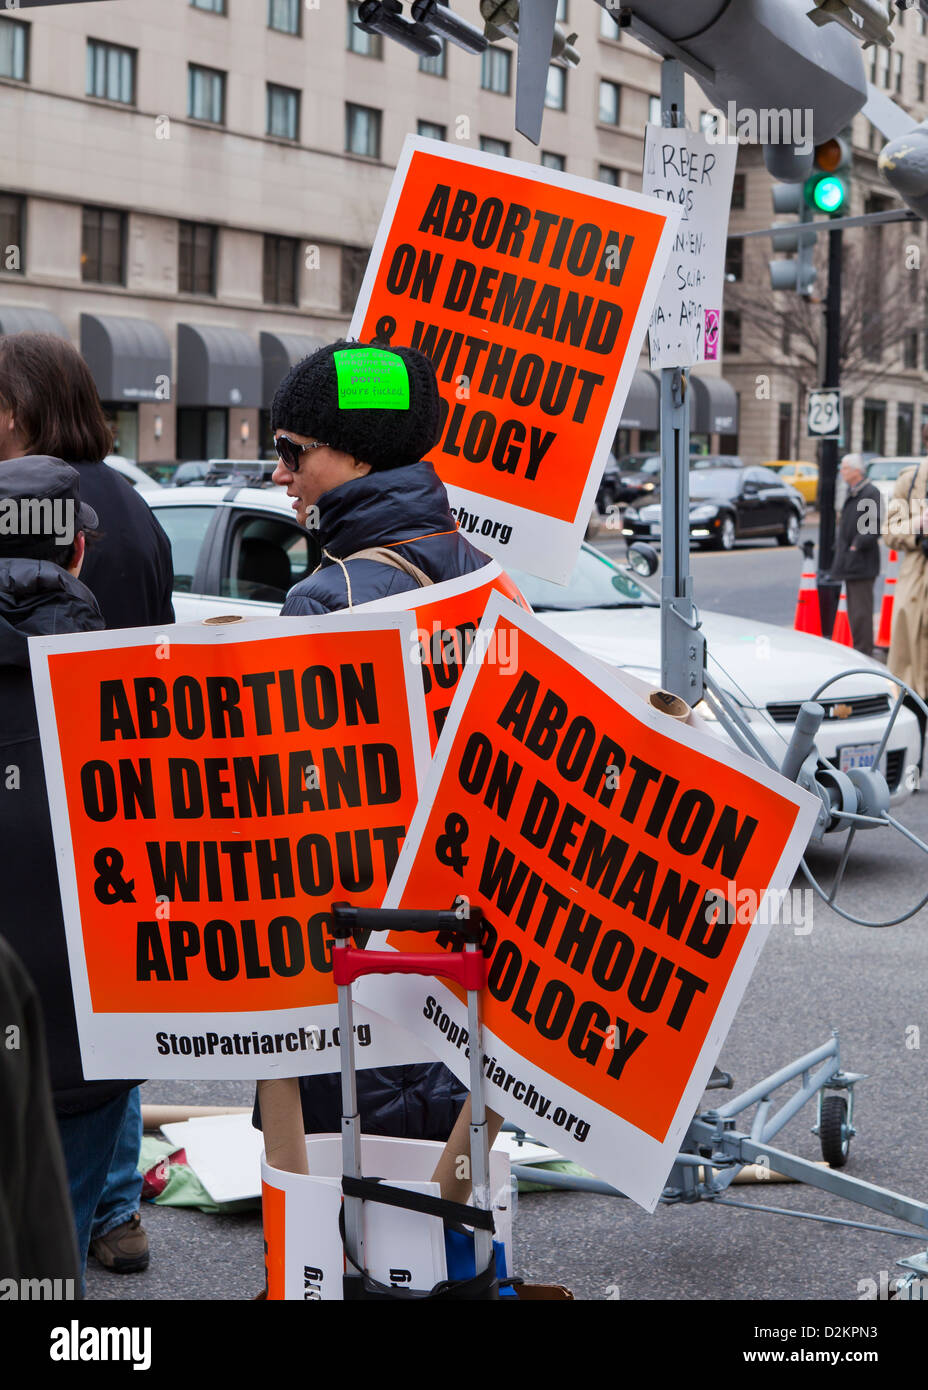 Pro abortion message placards - Stock Image